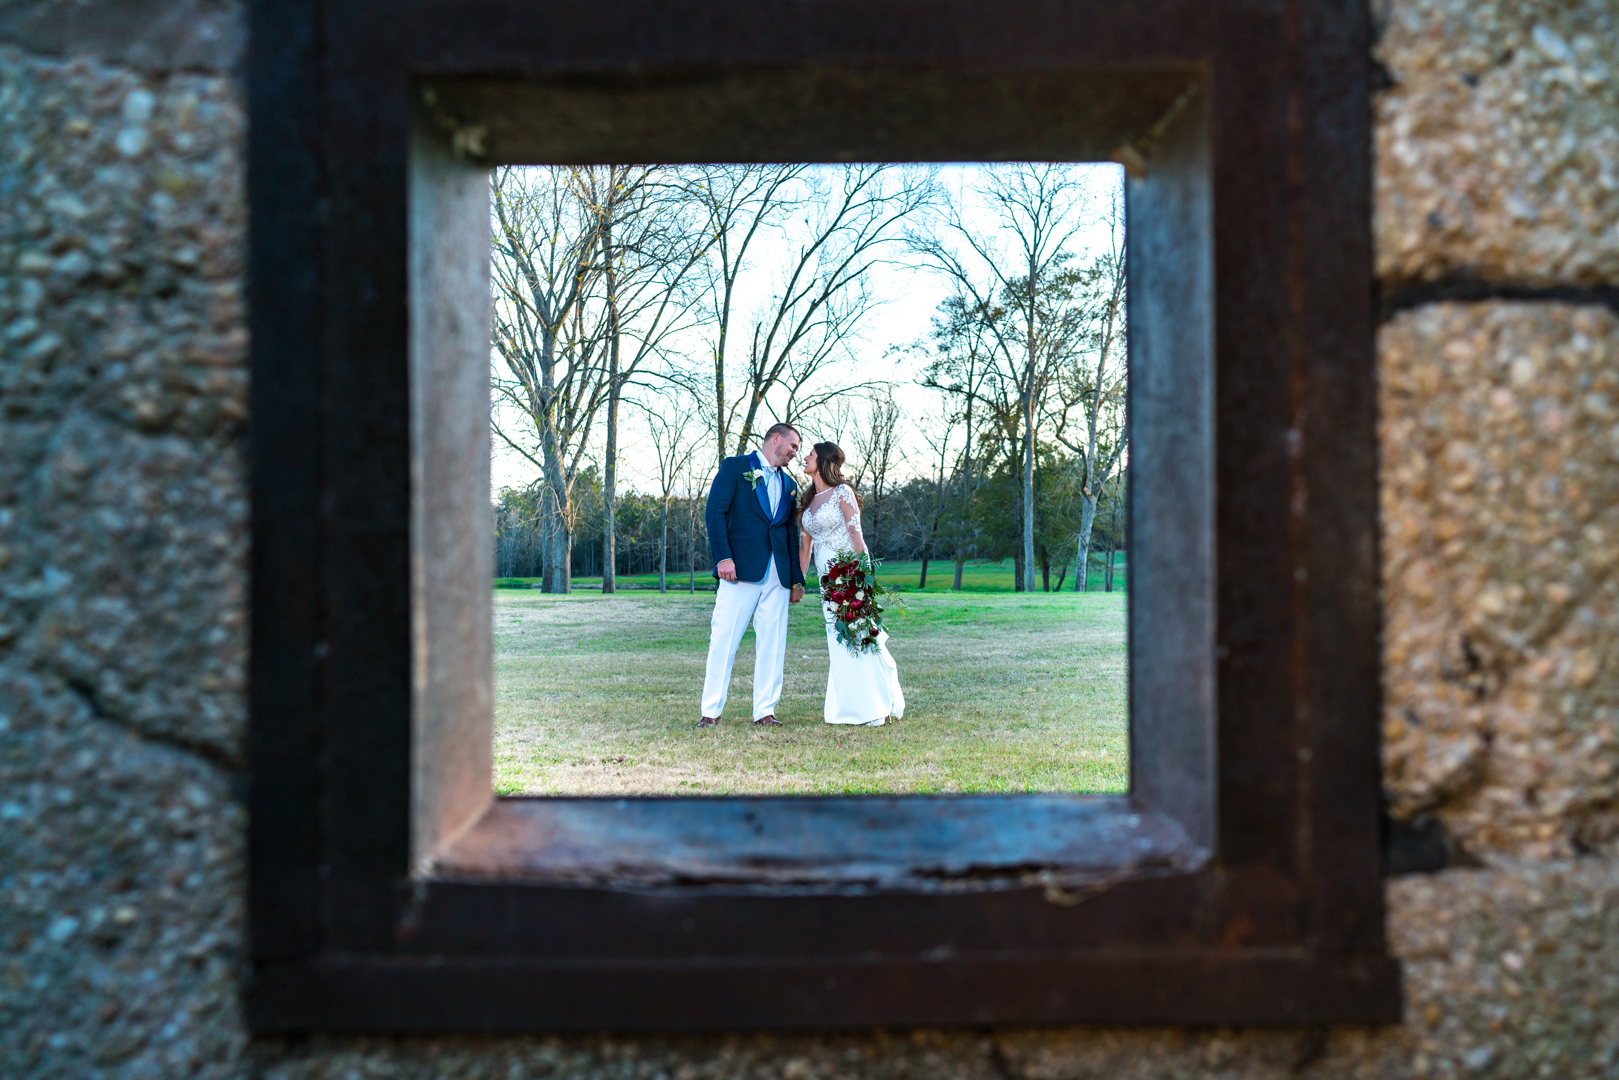 wedding-photographers-pensacola-44.jpg